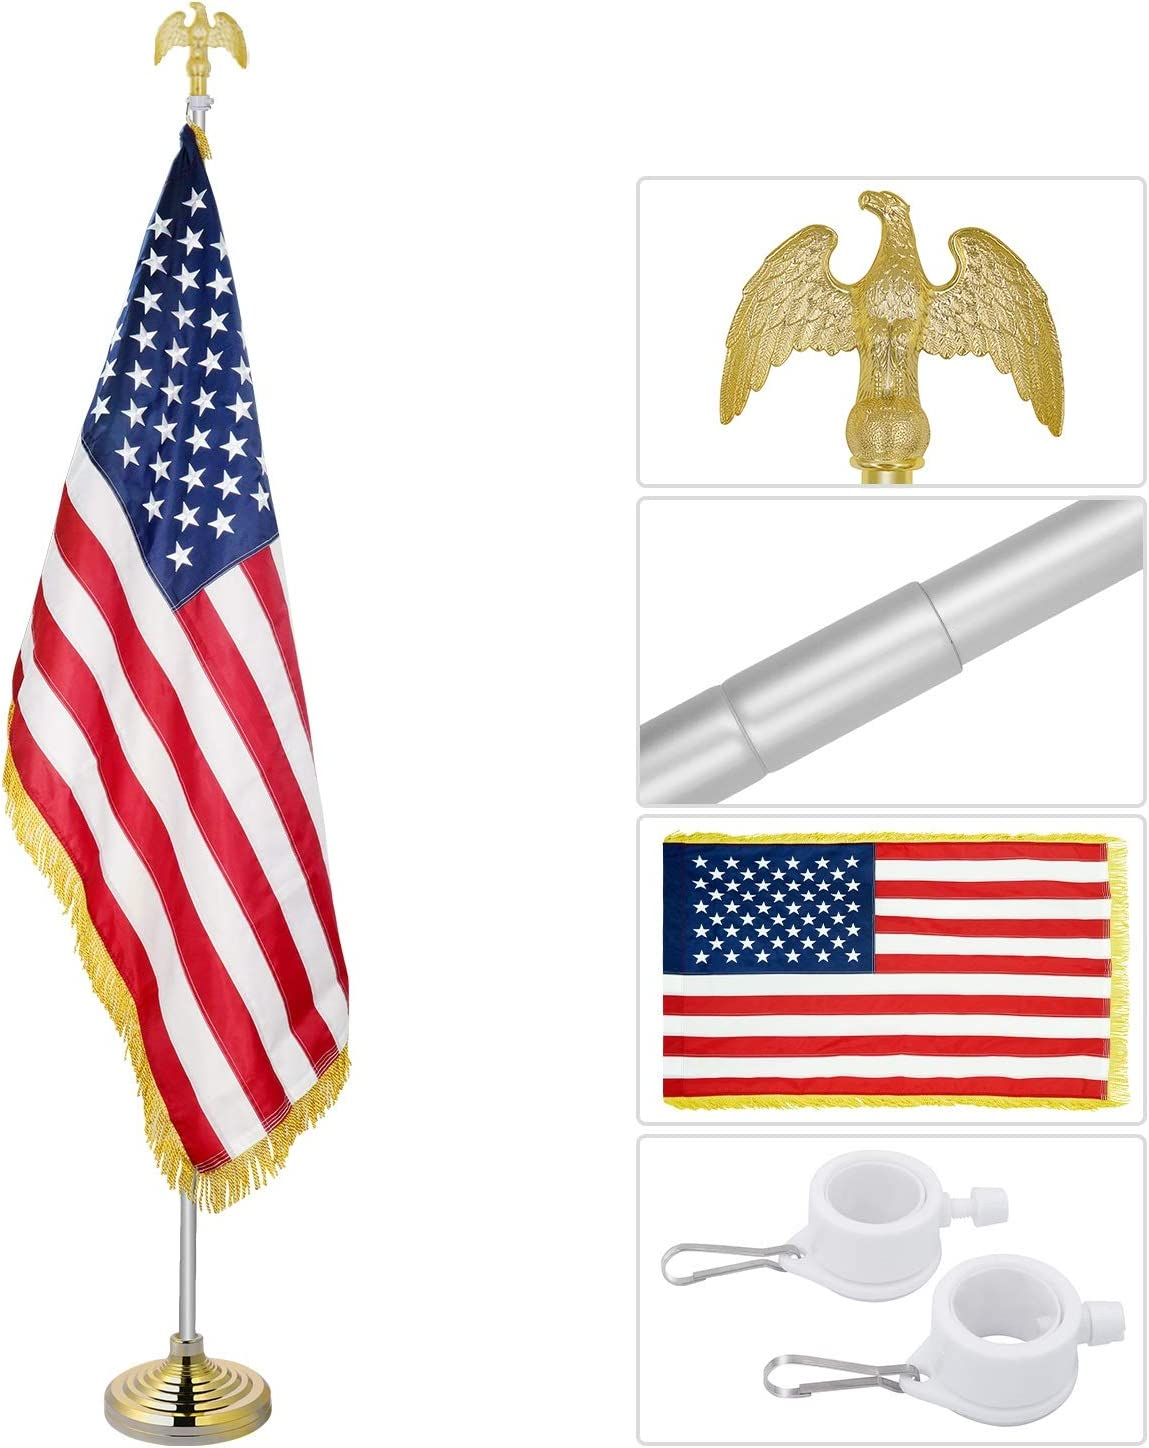 Jetlifee Indoor American Flag Pole Set - Telescopic 3.5-8 ft Aluminum Flagpole with Eagle Topper Ornament, Embroidered Stars, Sewn Stripes, Gold Fringe US Flag for Home Office Churches & Auditoriums